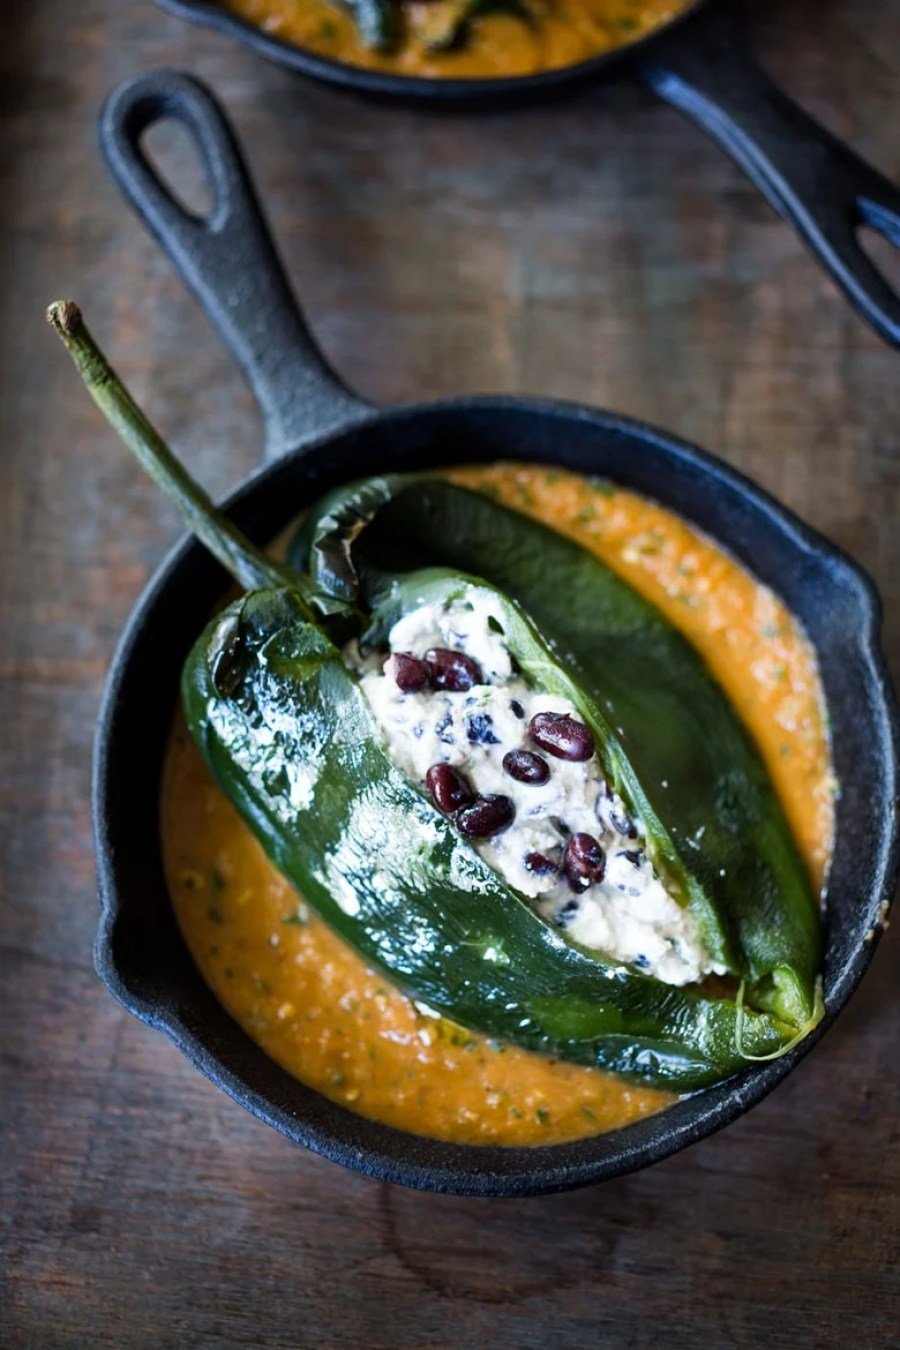 A vegan Roasted Chile Rellenos Recipe -simplified by roasting (not frying) the peppers and Rancheros sauce ingredients all together on one sheet-pan in the oven! | www.feastingathome.com #chilerellenos #vegan #roasted